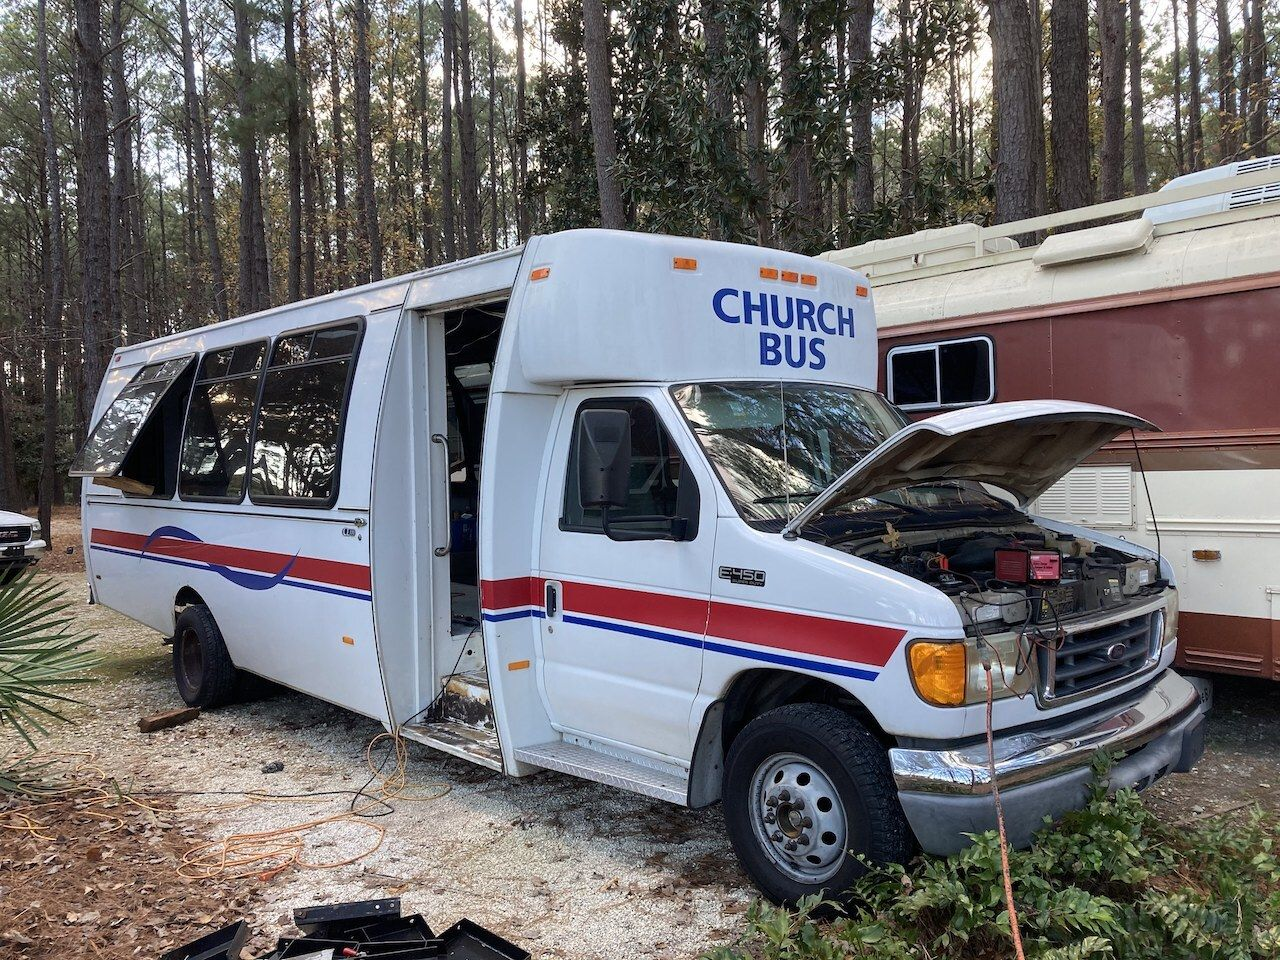 Church bus conversion breakdown, live in converted bus